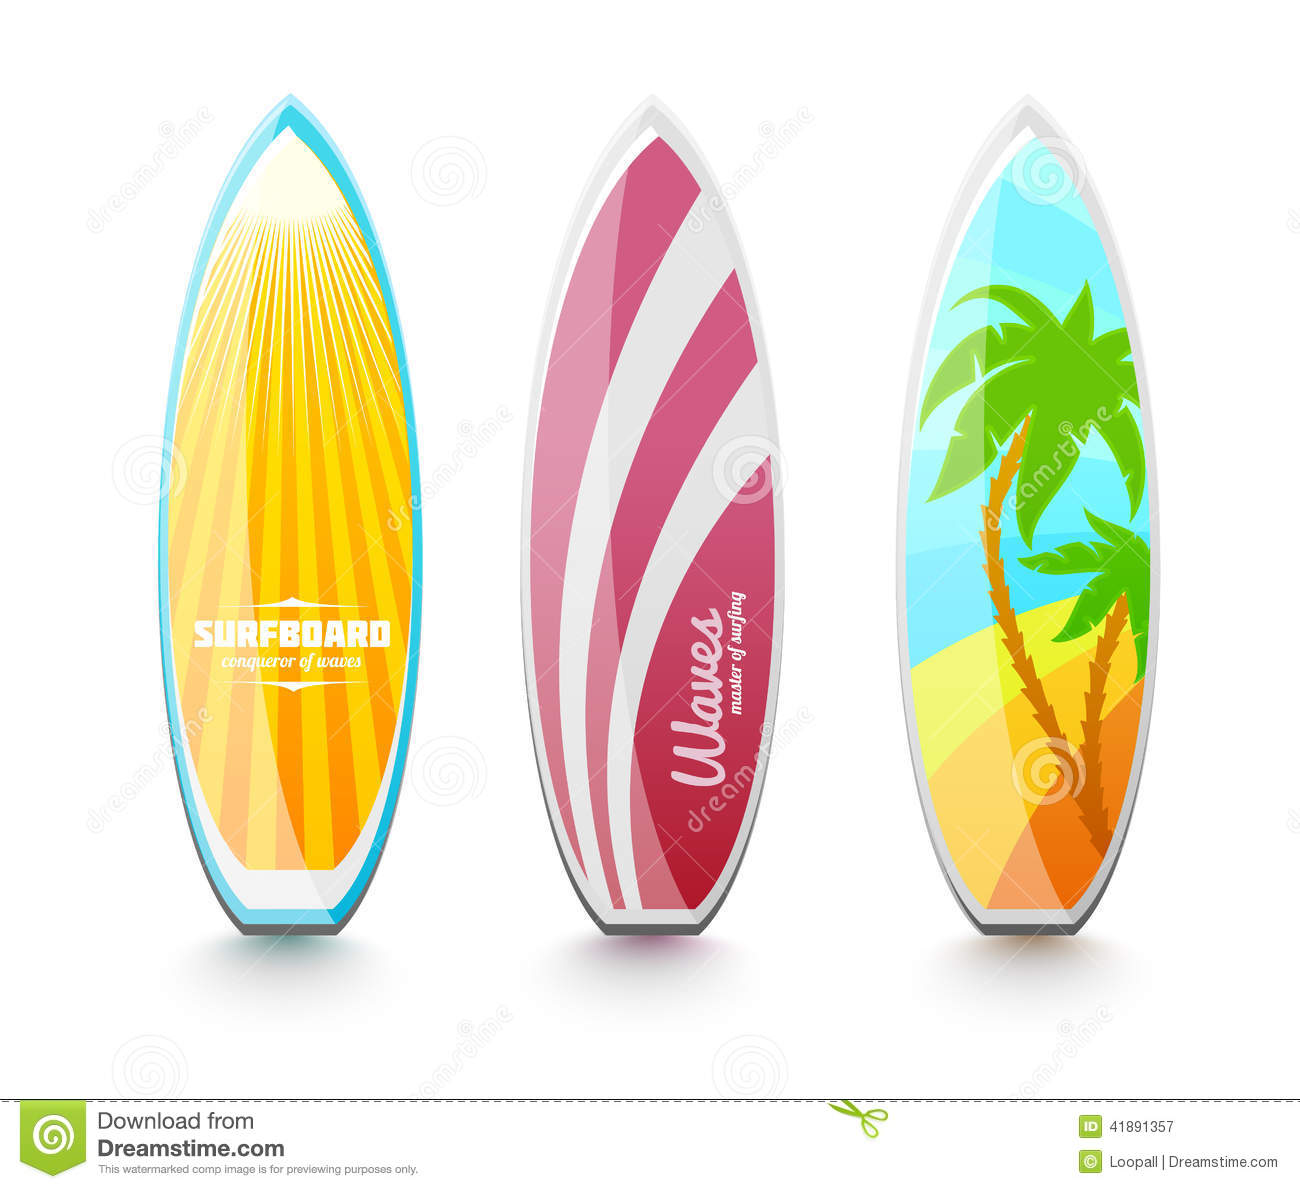 Surfboards Surfing Clipart - Clipart Kid